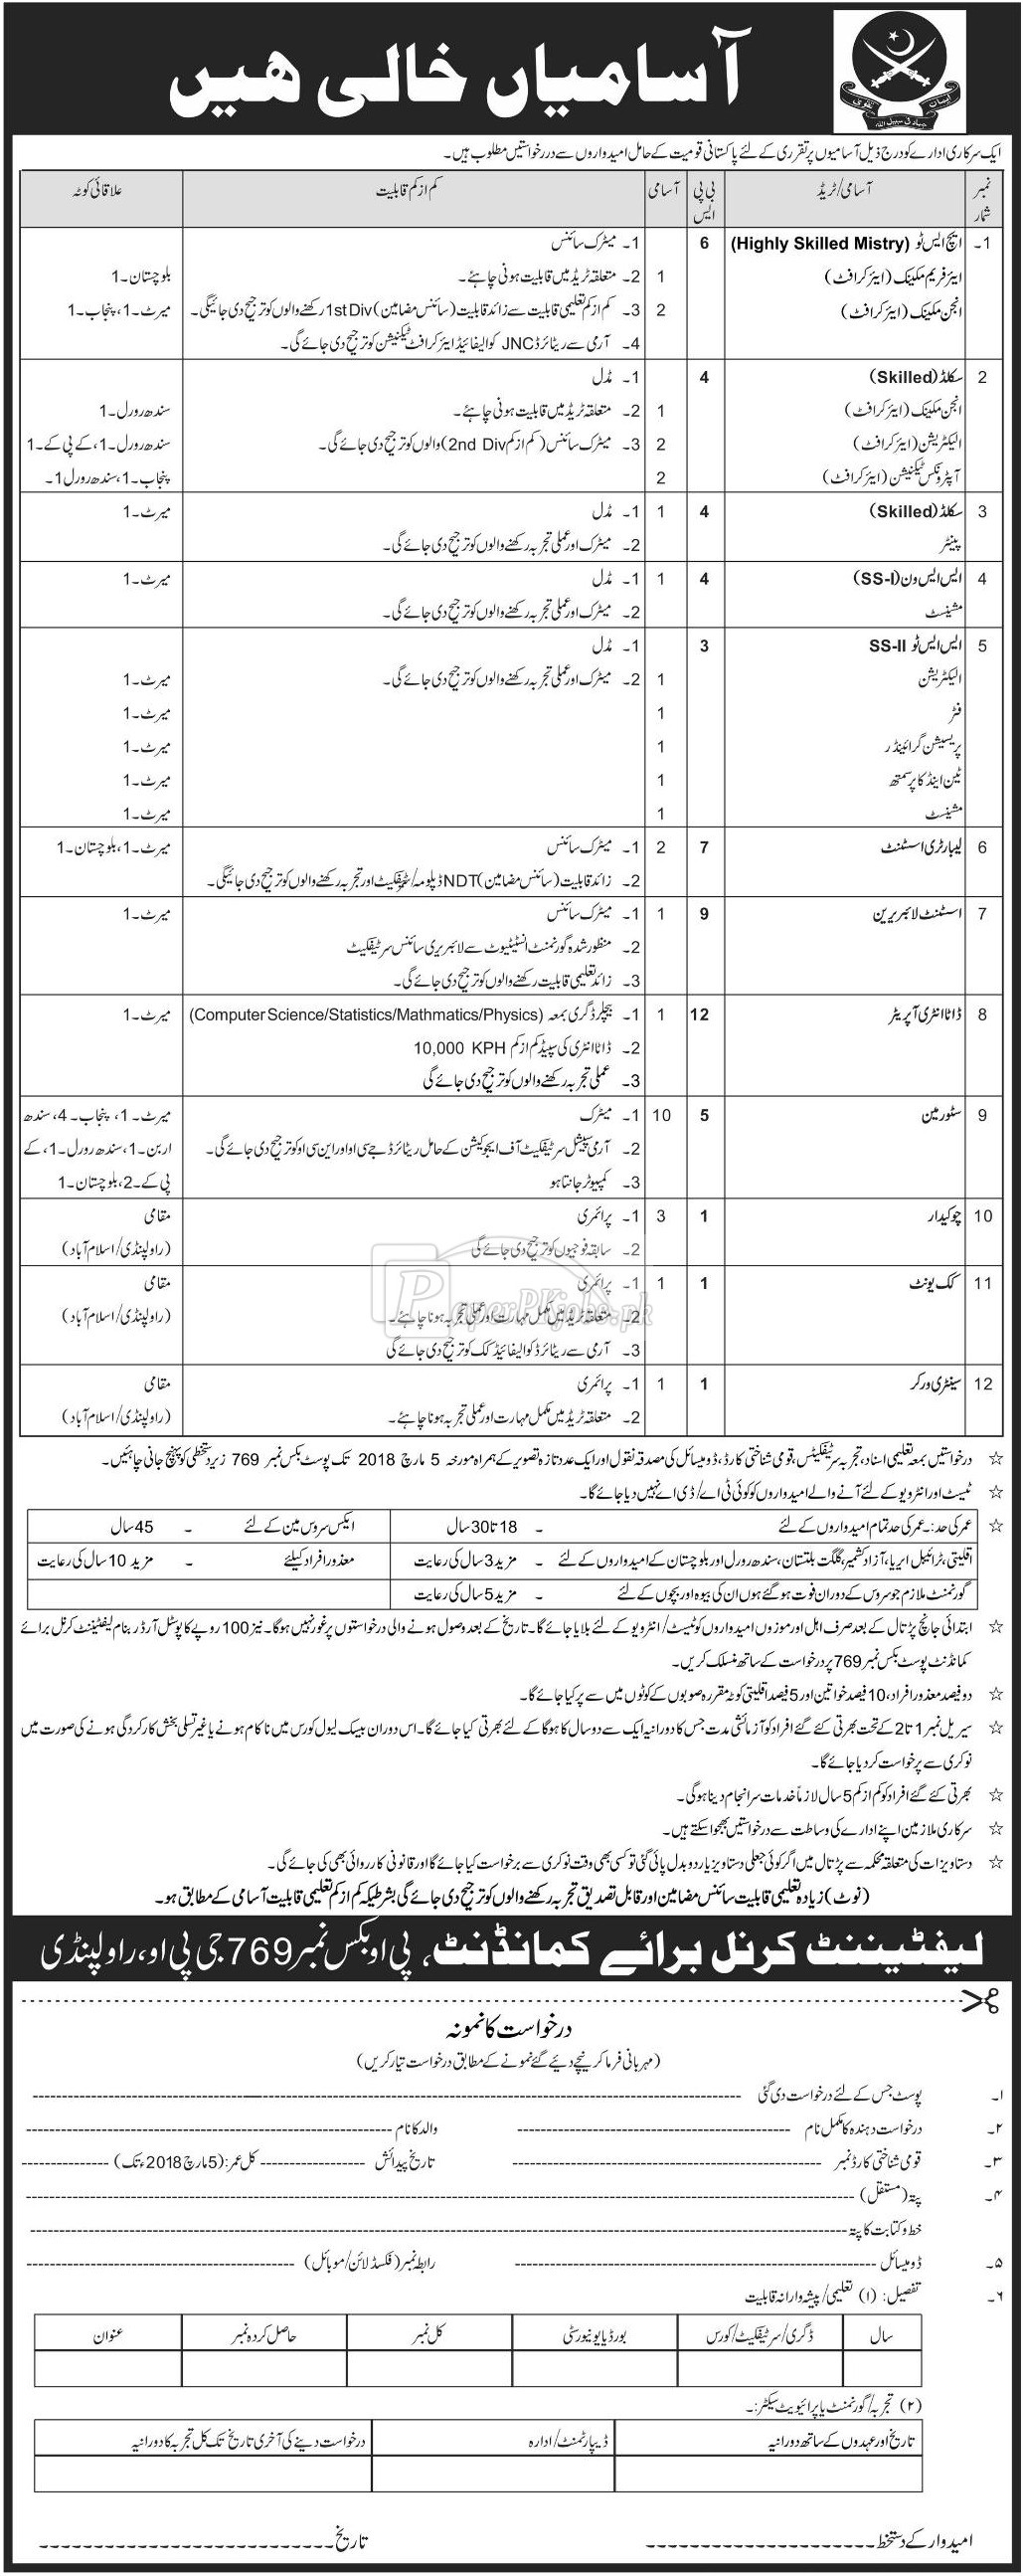 Public Sector Organization P.O.Box 769 Rawalpindi Jobs 2018